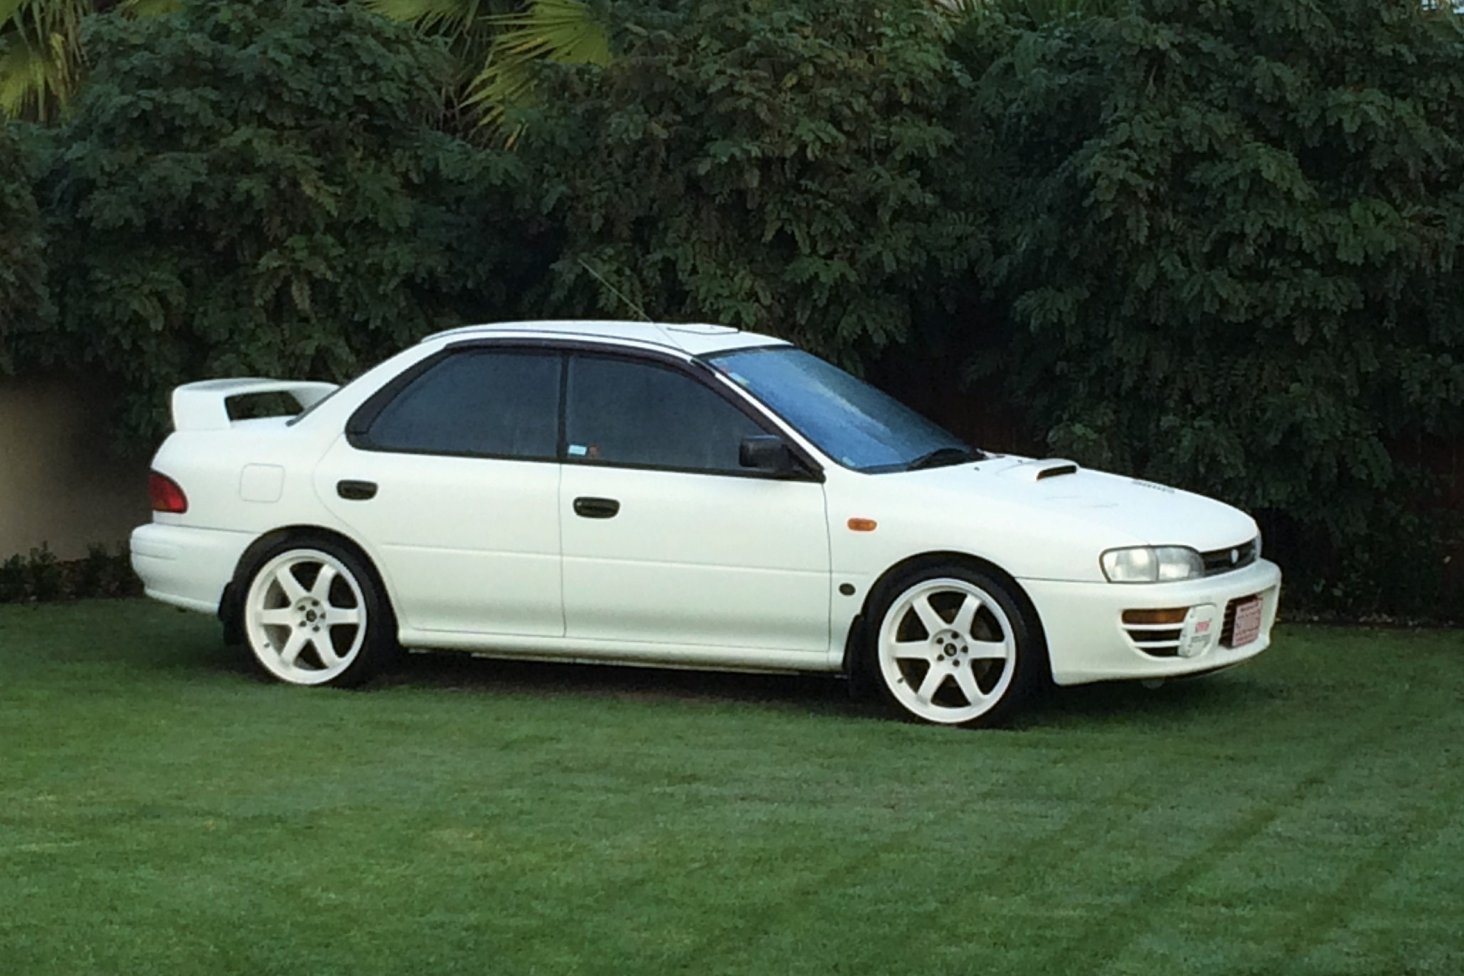 Chris Watt's 1995 Subaru WRX RA is one of the 25 WRX competition winners.